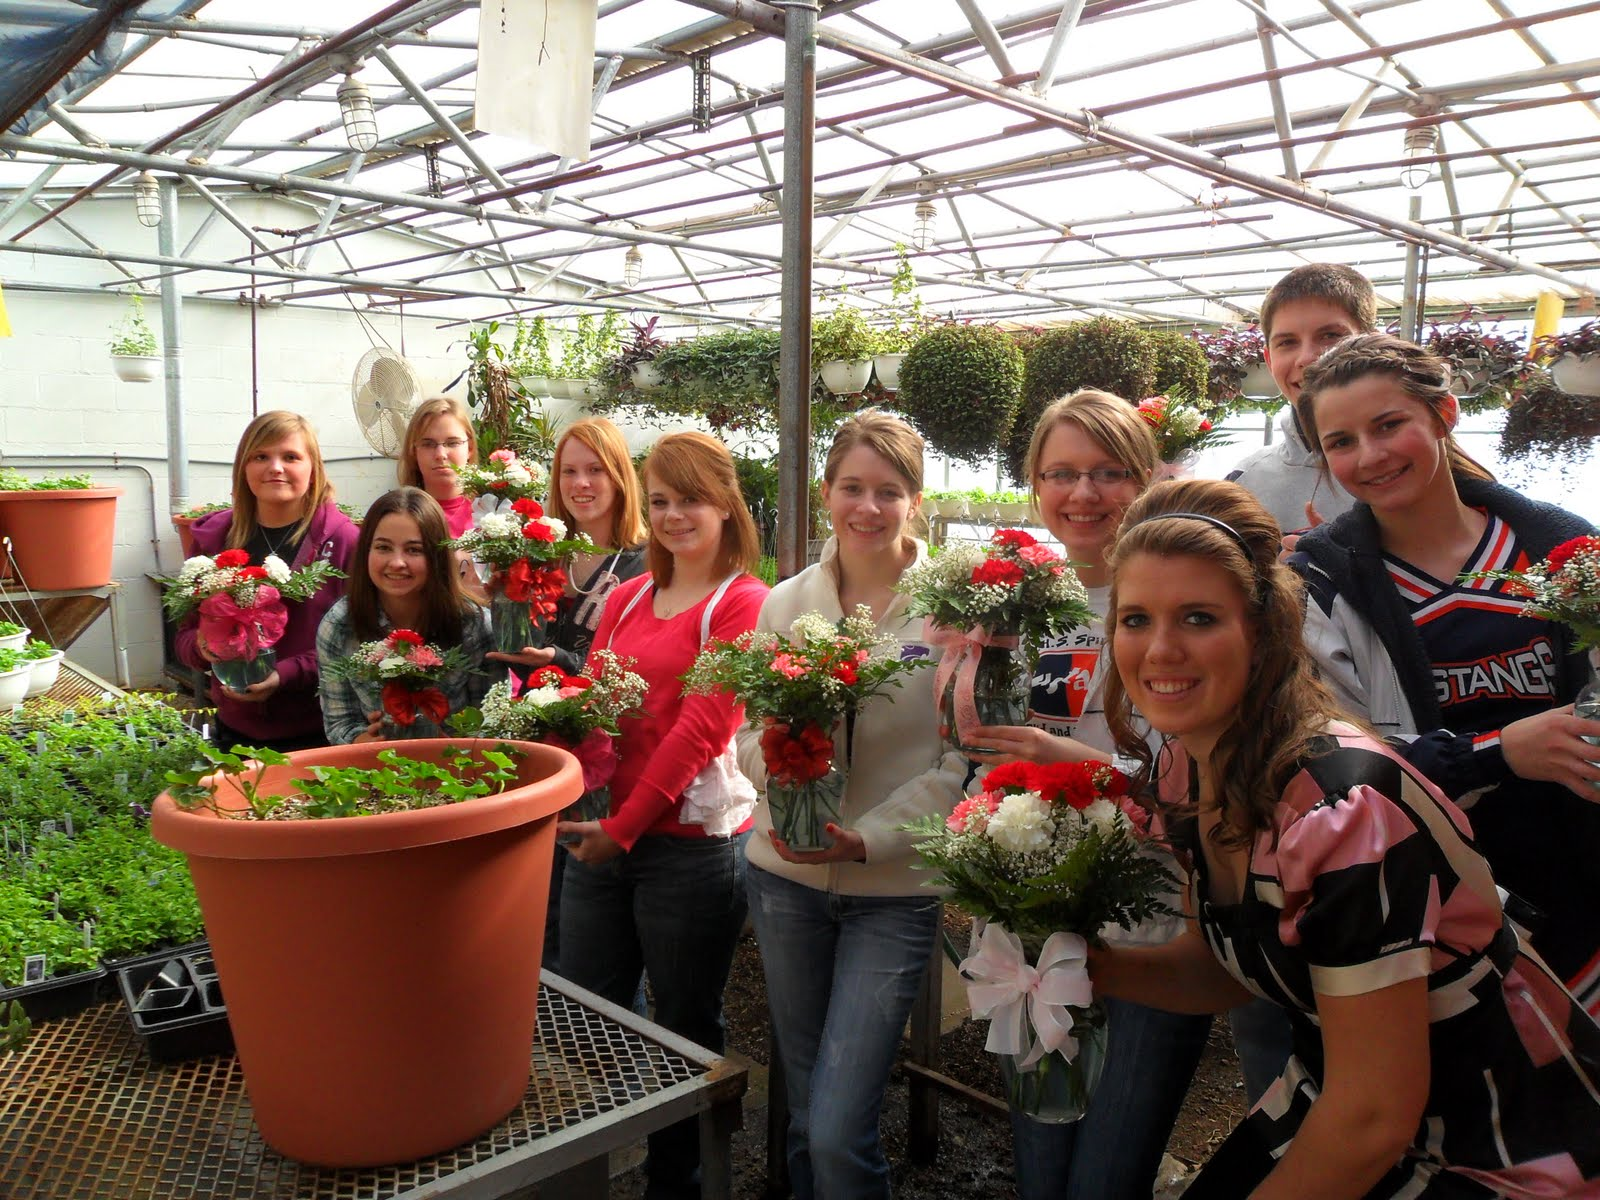 enterpeneurship in floriculture Introduction let us introduce ourselves floral trade group helps entrepreneurs in the floriculture sector become more successful (this includes wholesalers, retailers and florists) companies van der plas greenflor marionette fleurs.